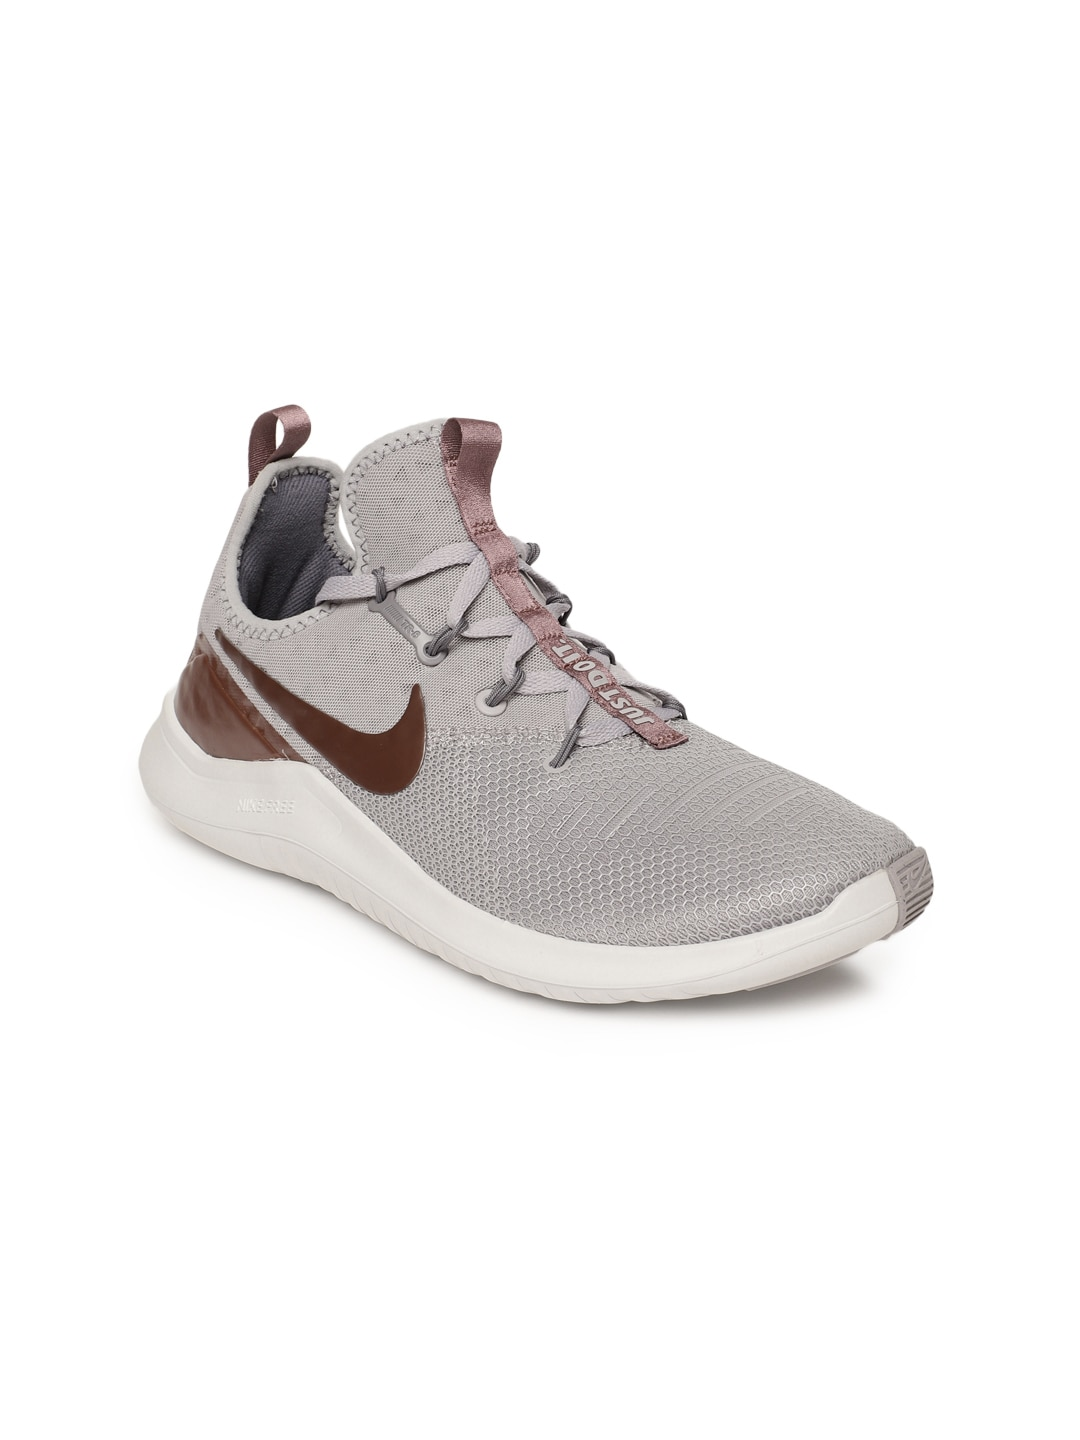 d1327fe518ff5 Nike - Shop for Nike Apparels Online in India